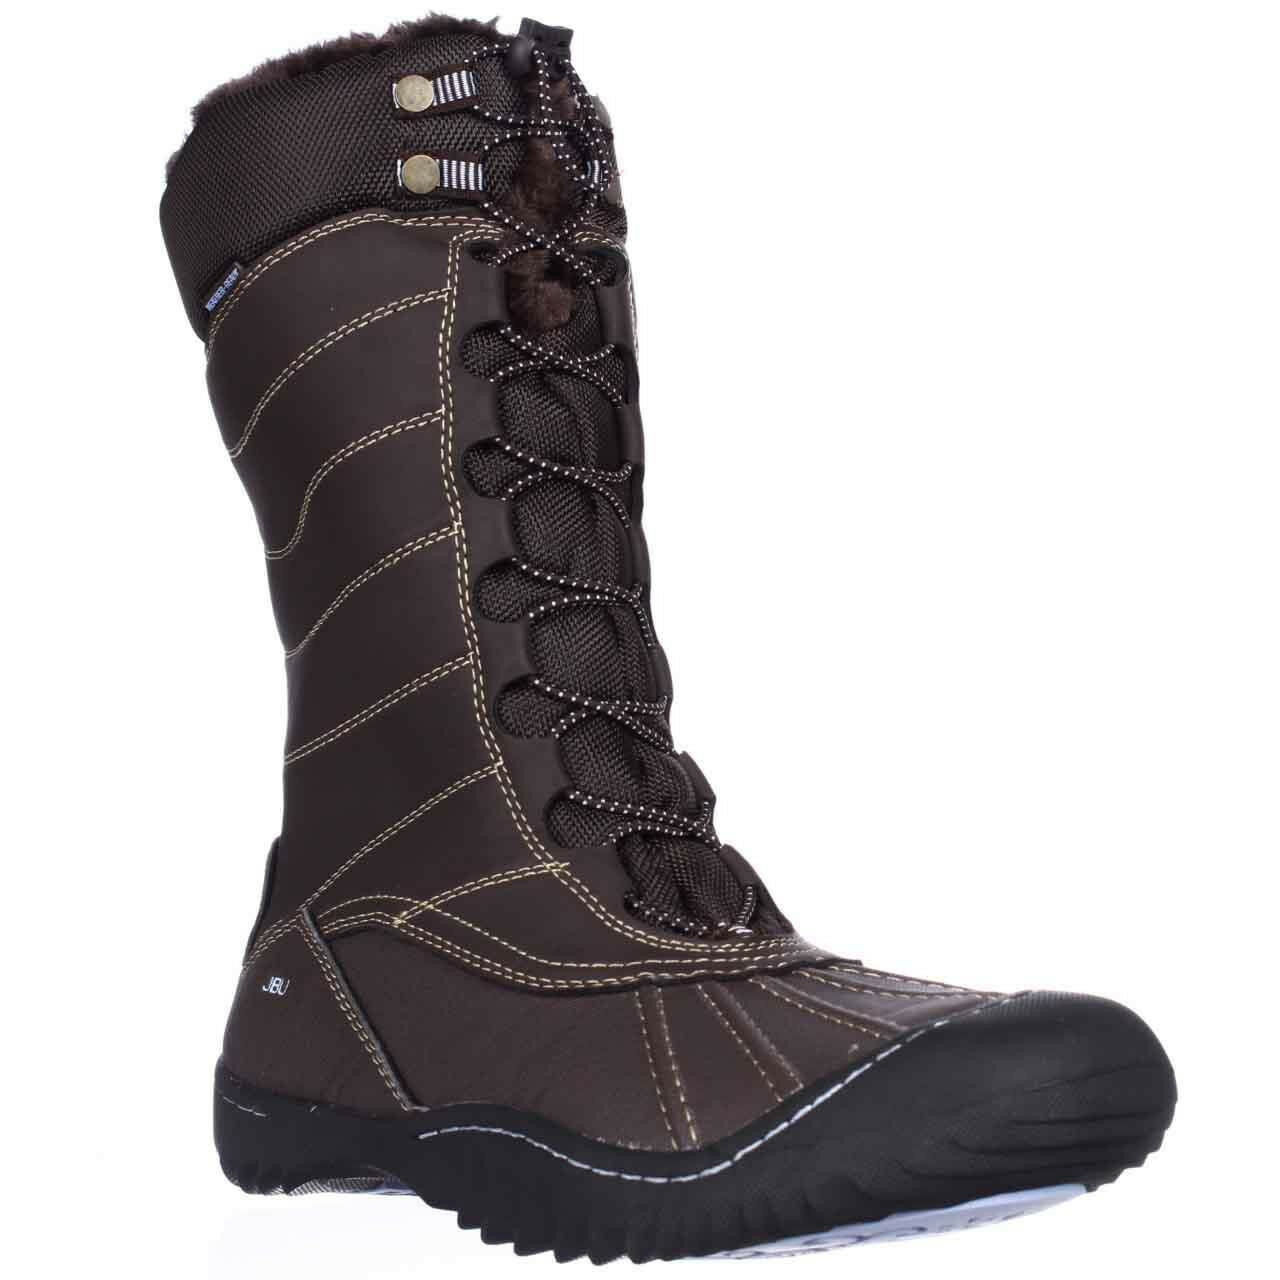 Jambu LONGVIEW Winter Snow Stiefel braun,6